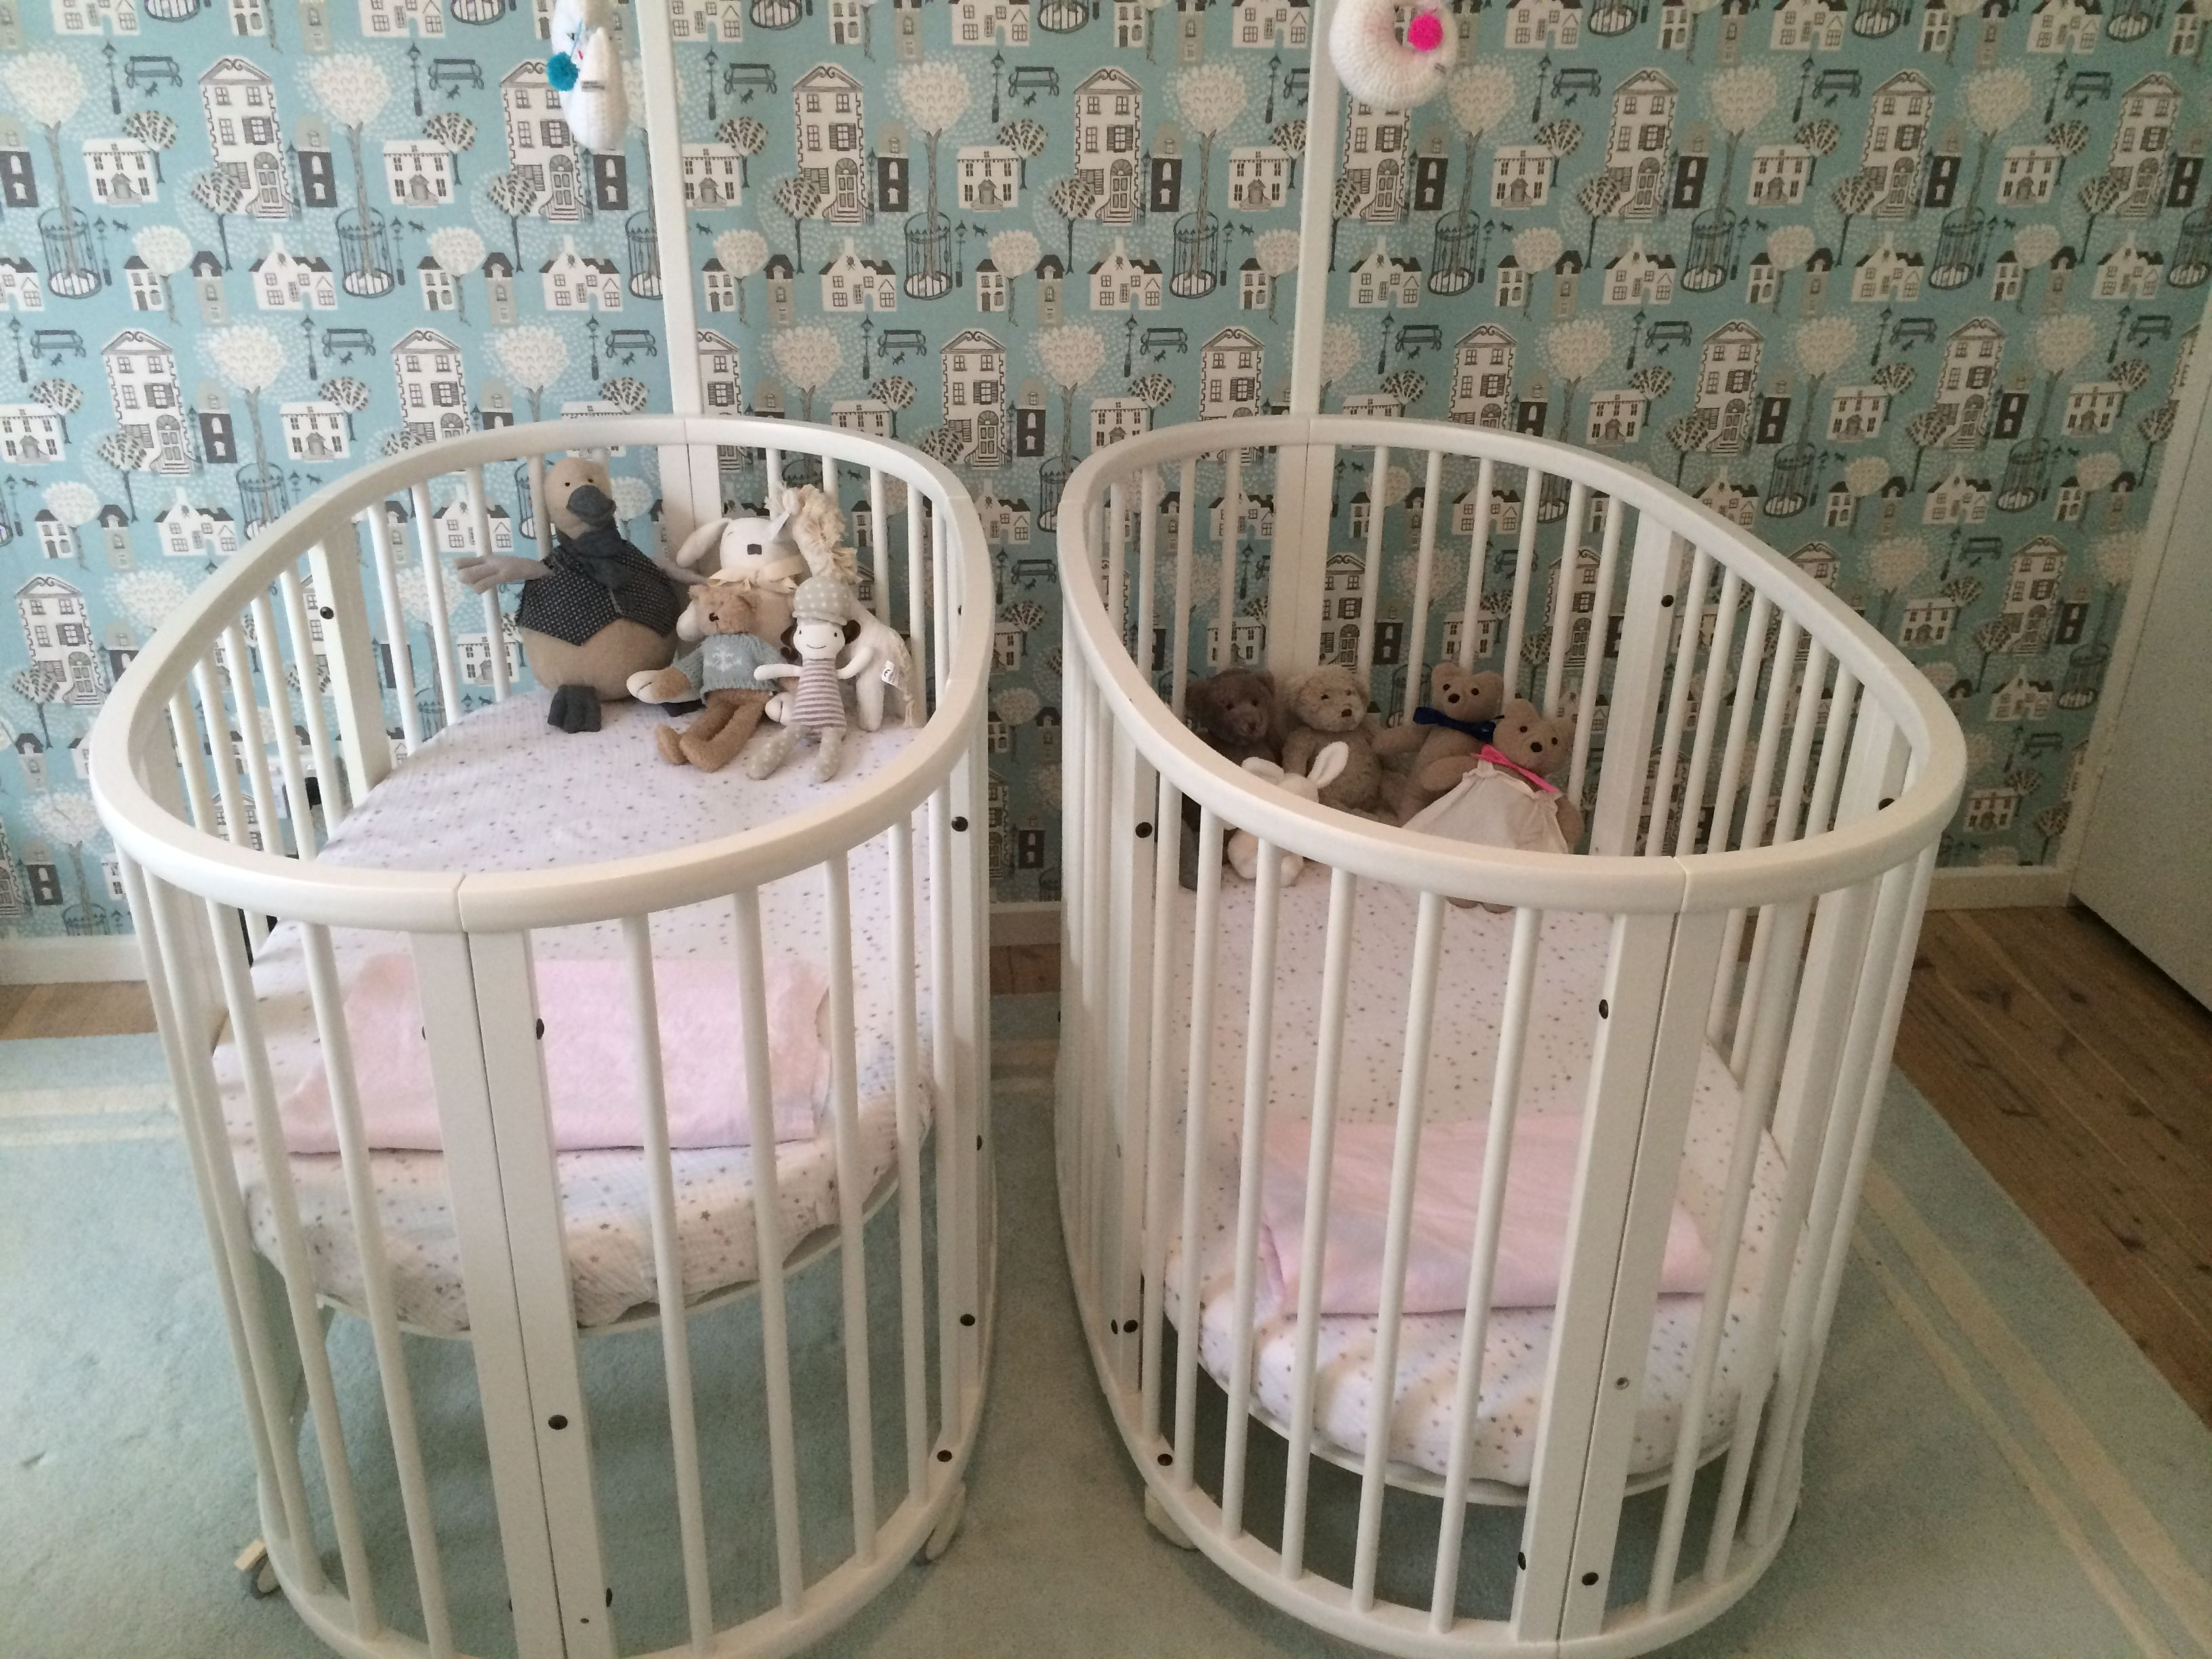 residence awesome boy bedroom crib inspiration home twin to bedding twins girl your about for sets baby luxurius regarding decor remodel with